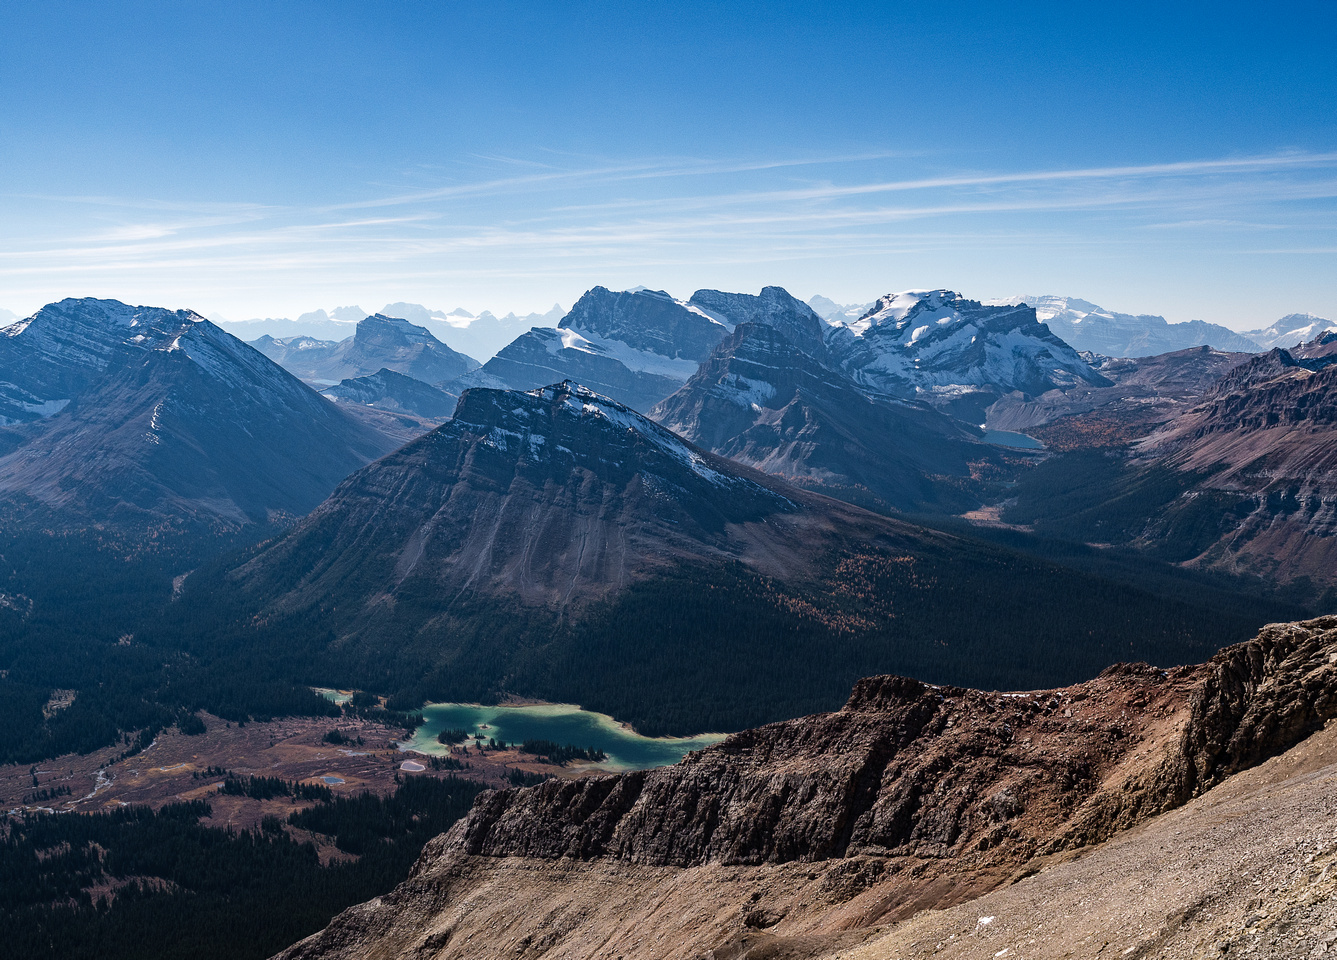 Looking over the largest of the Red Deer Lakes towards Skoki Mountain.